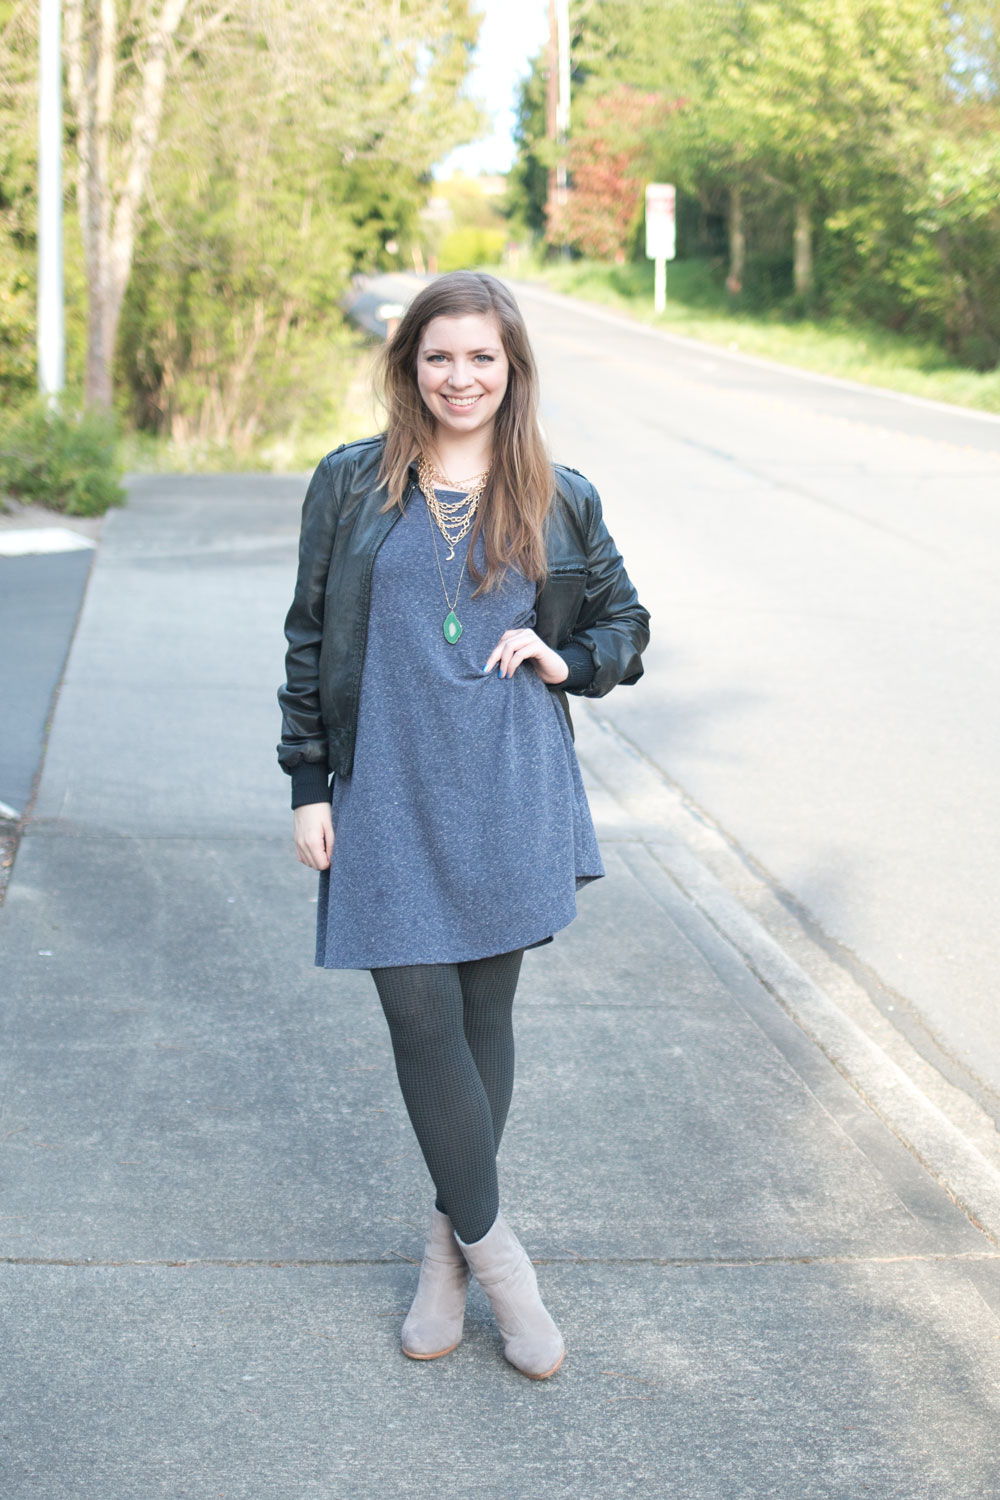 Swing Dress with Patterned Tia Tights and Leather Jacket / hellorigby seattle fashion and style blog